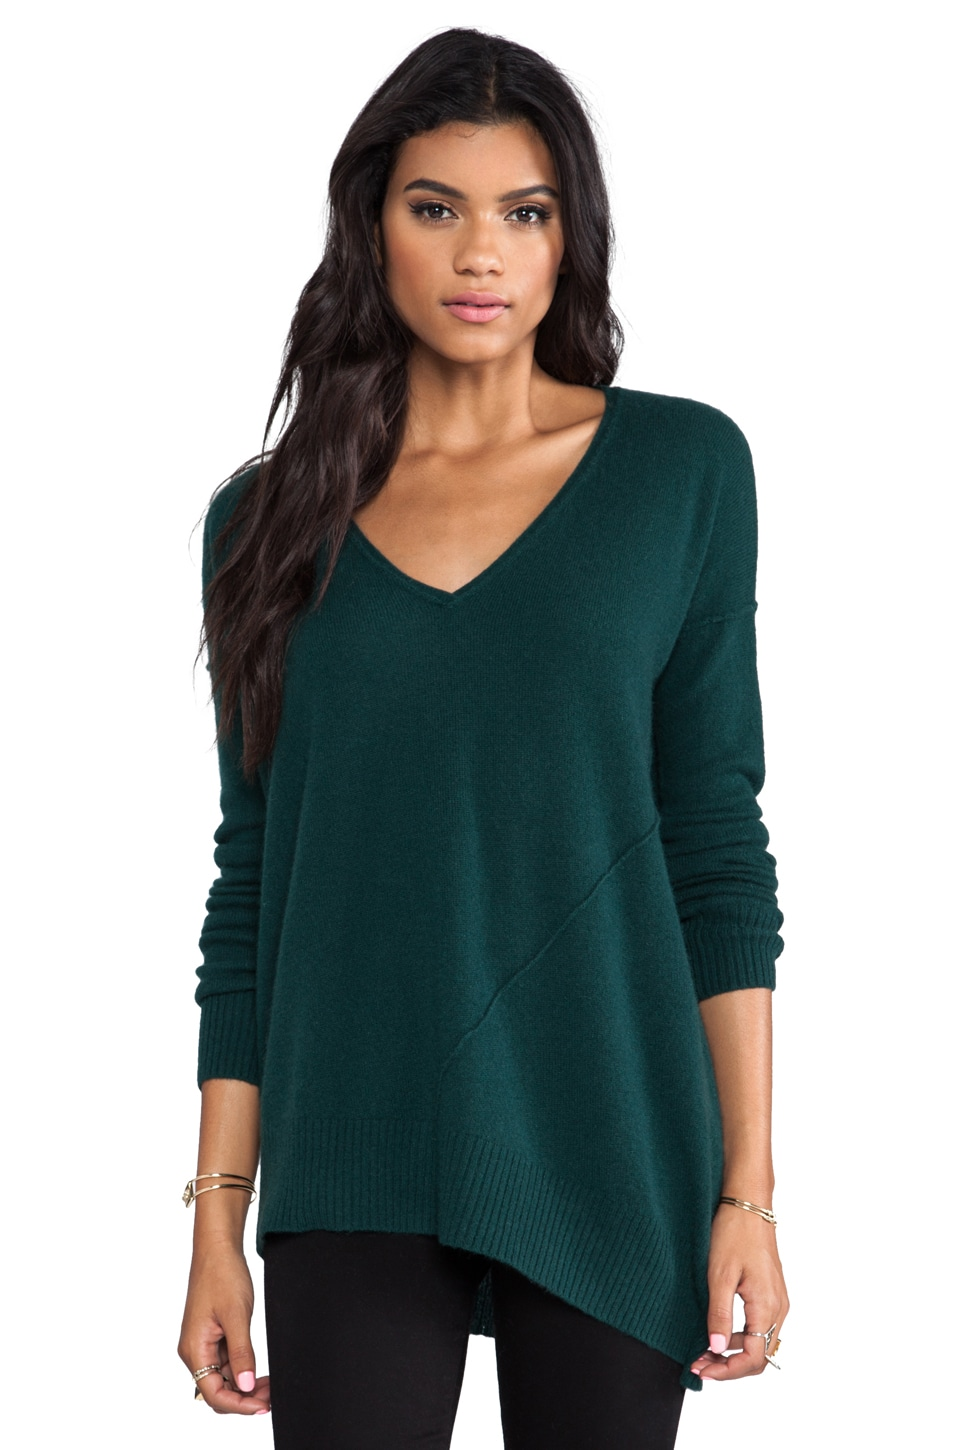 Central Park West Bristols Cashmere V Neck Sweater in Hunter Green